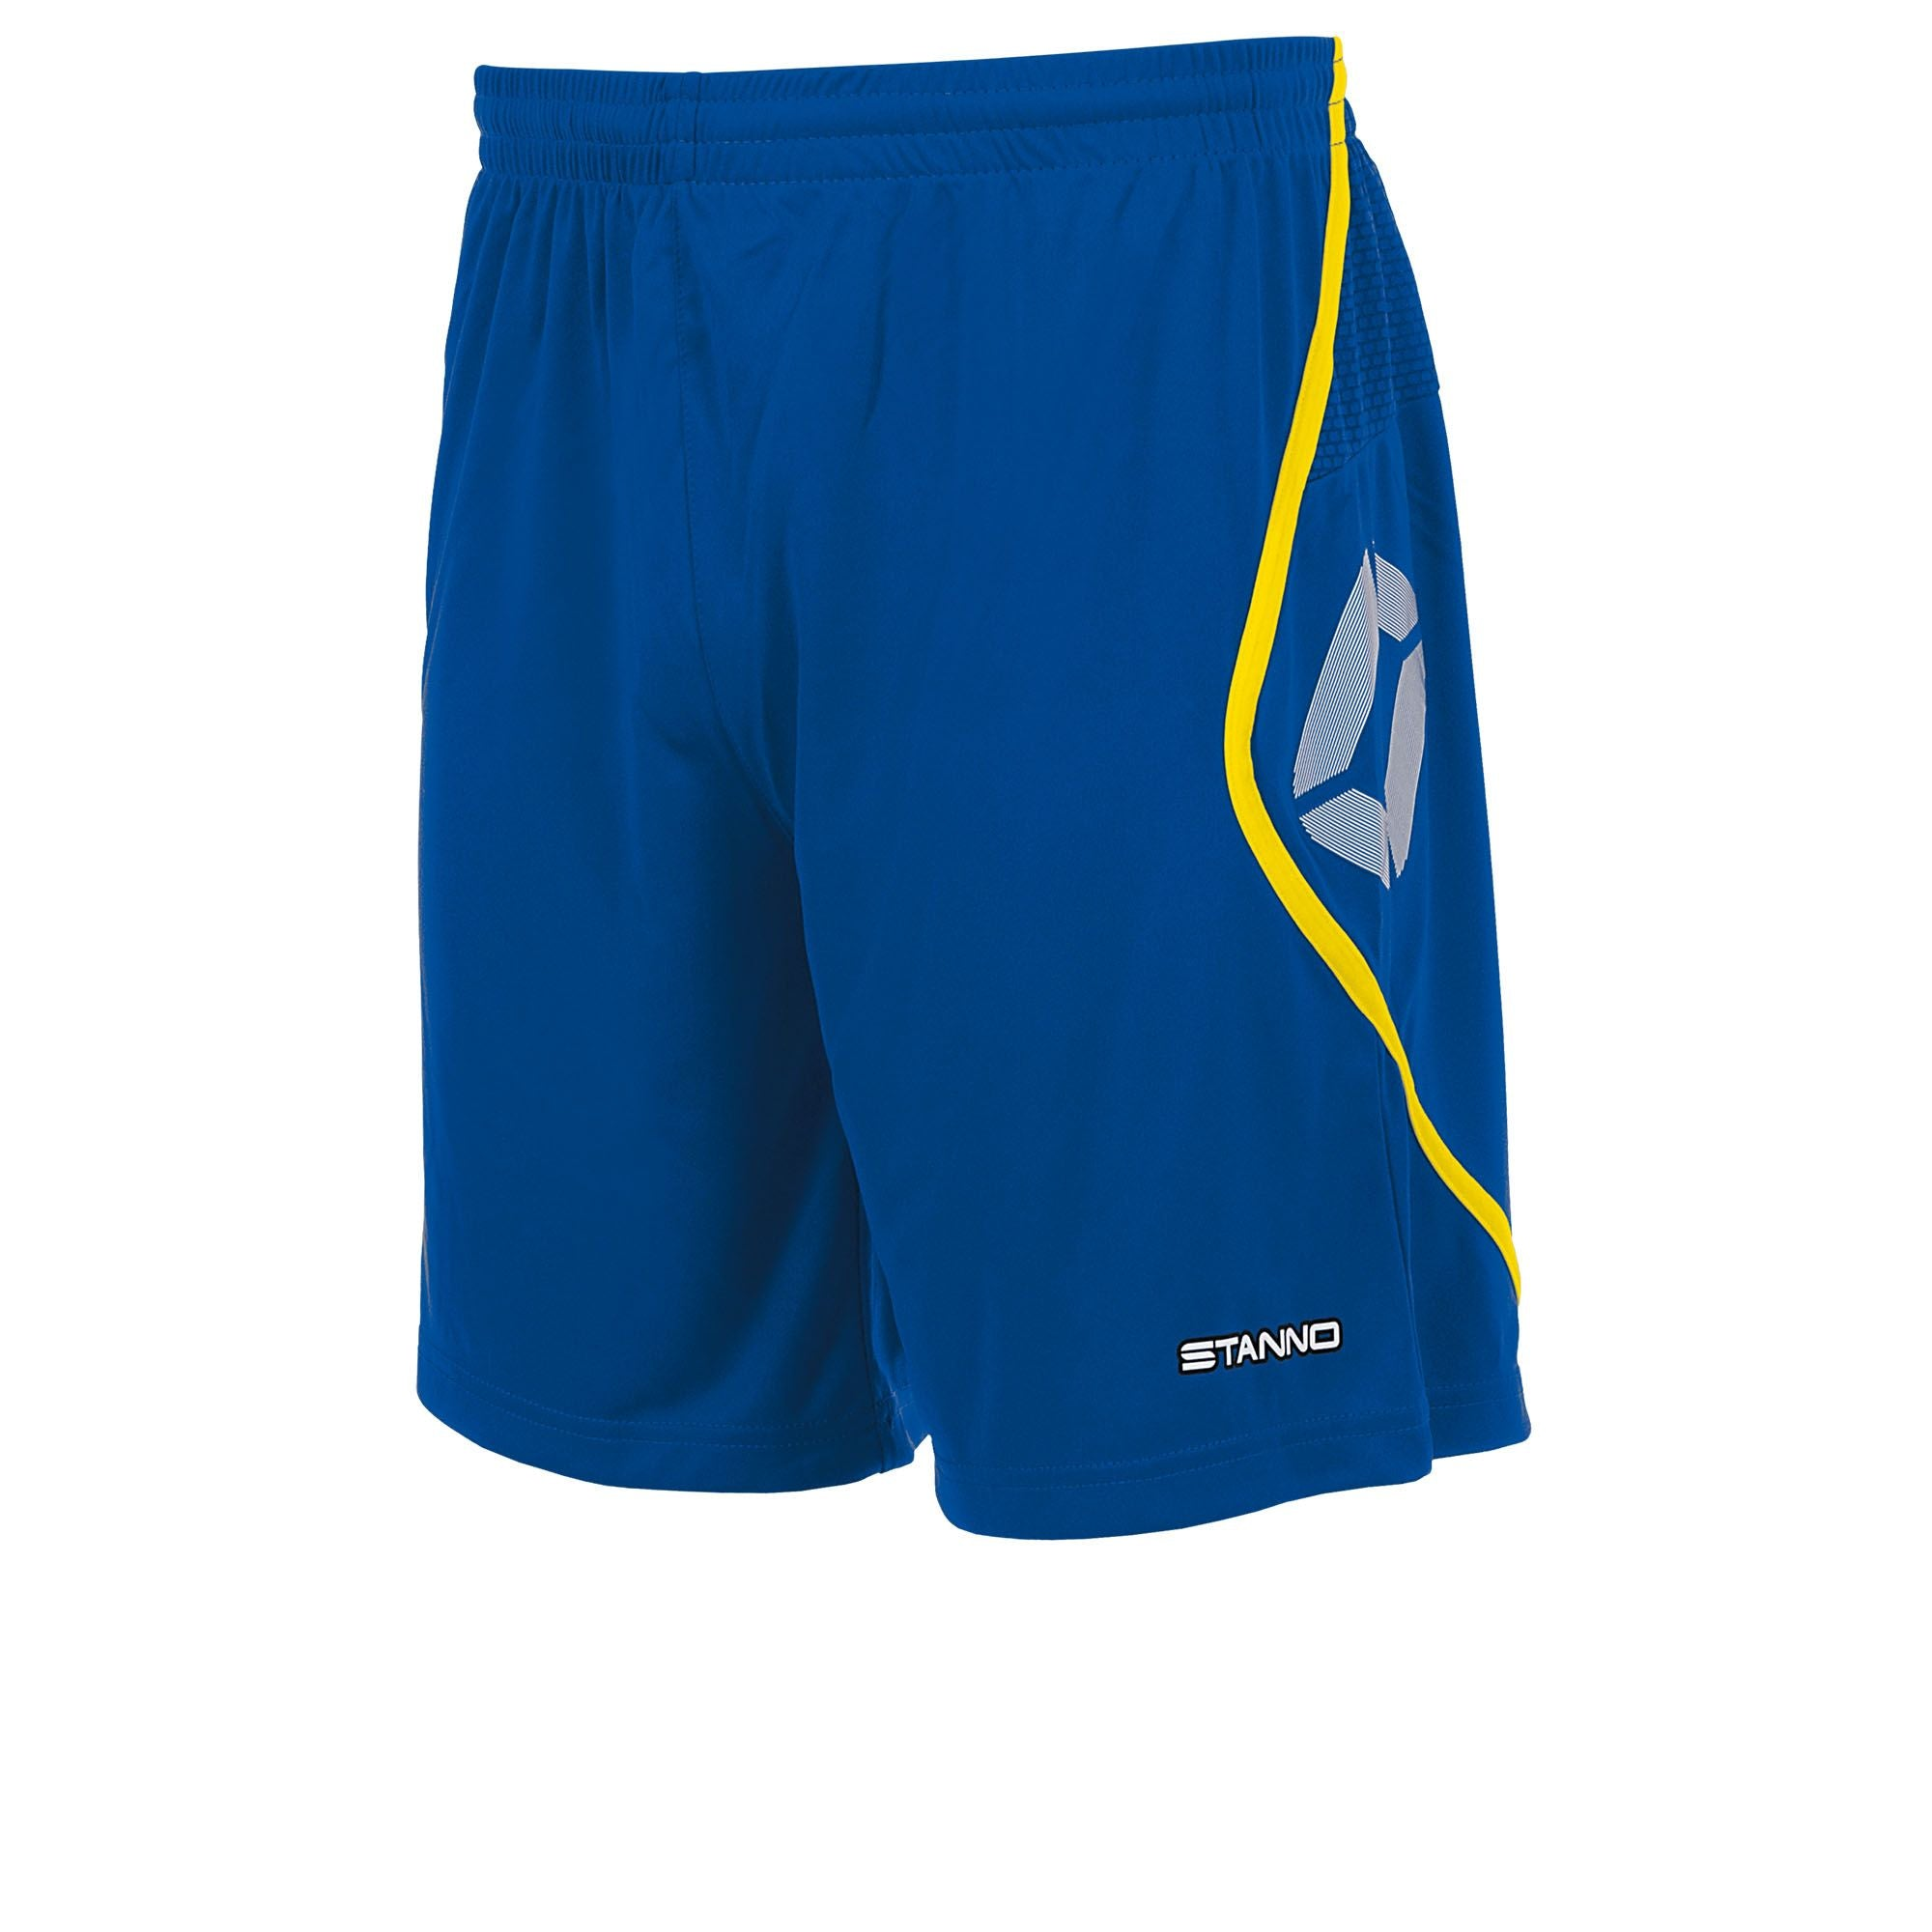 Stanno Pisa Shorts - Royal/Yellow